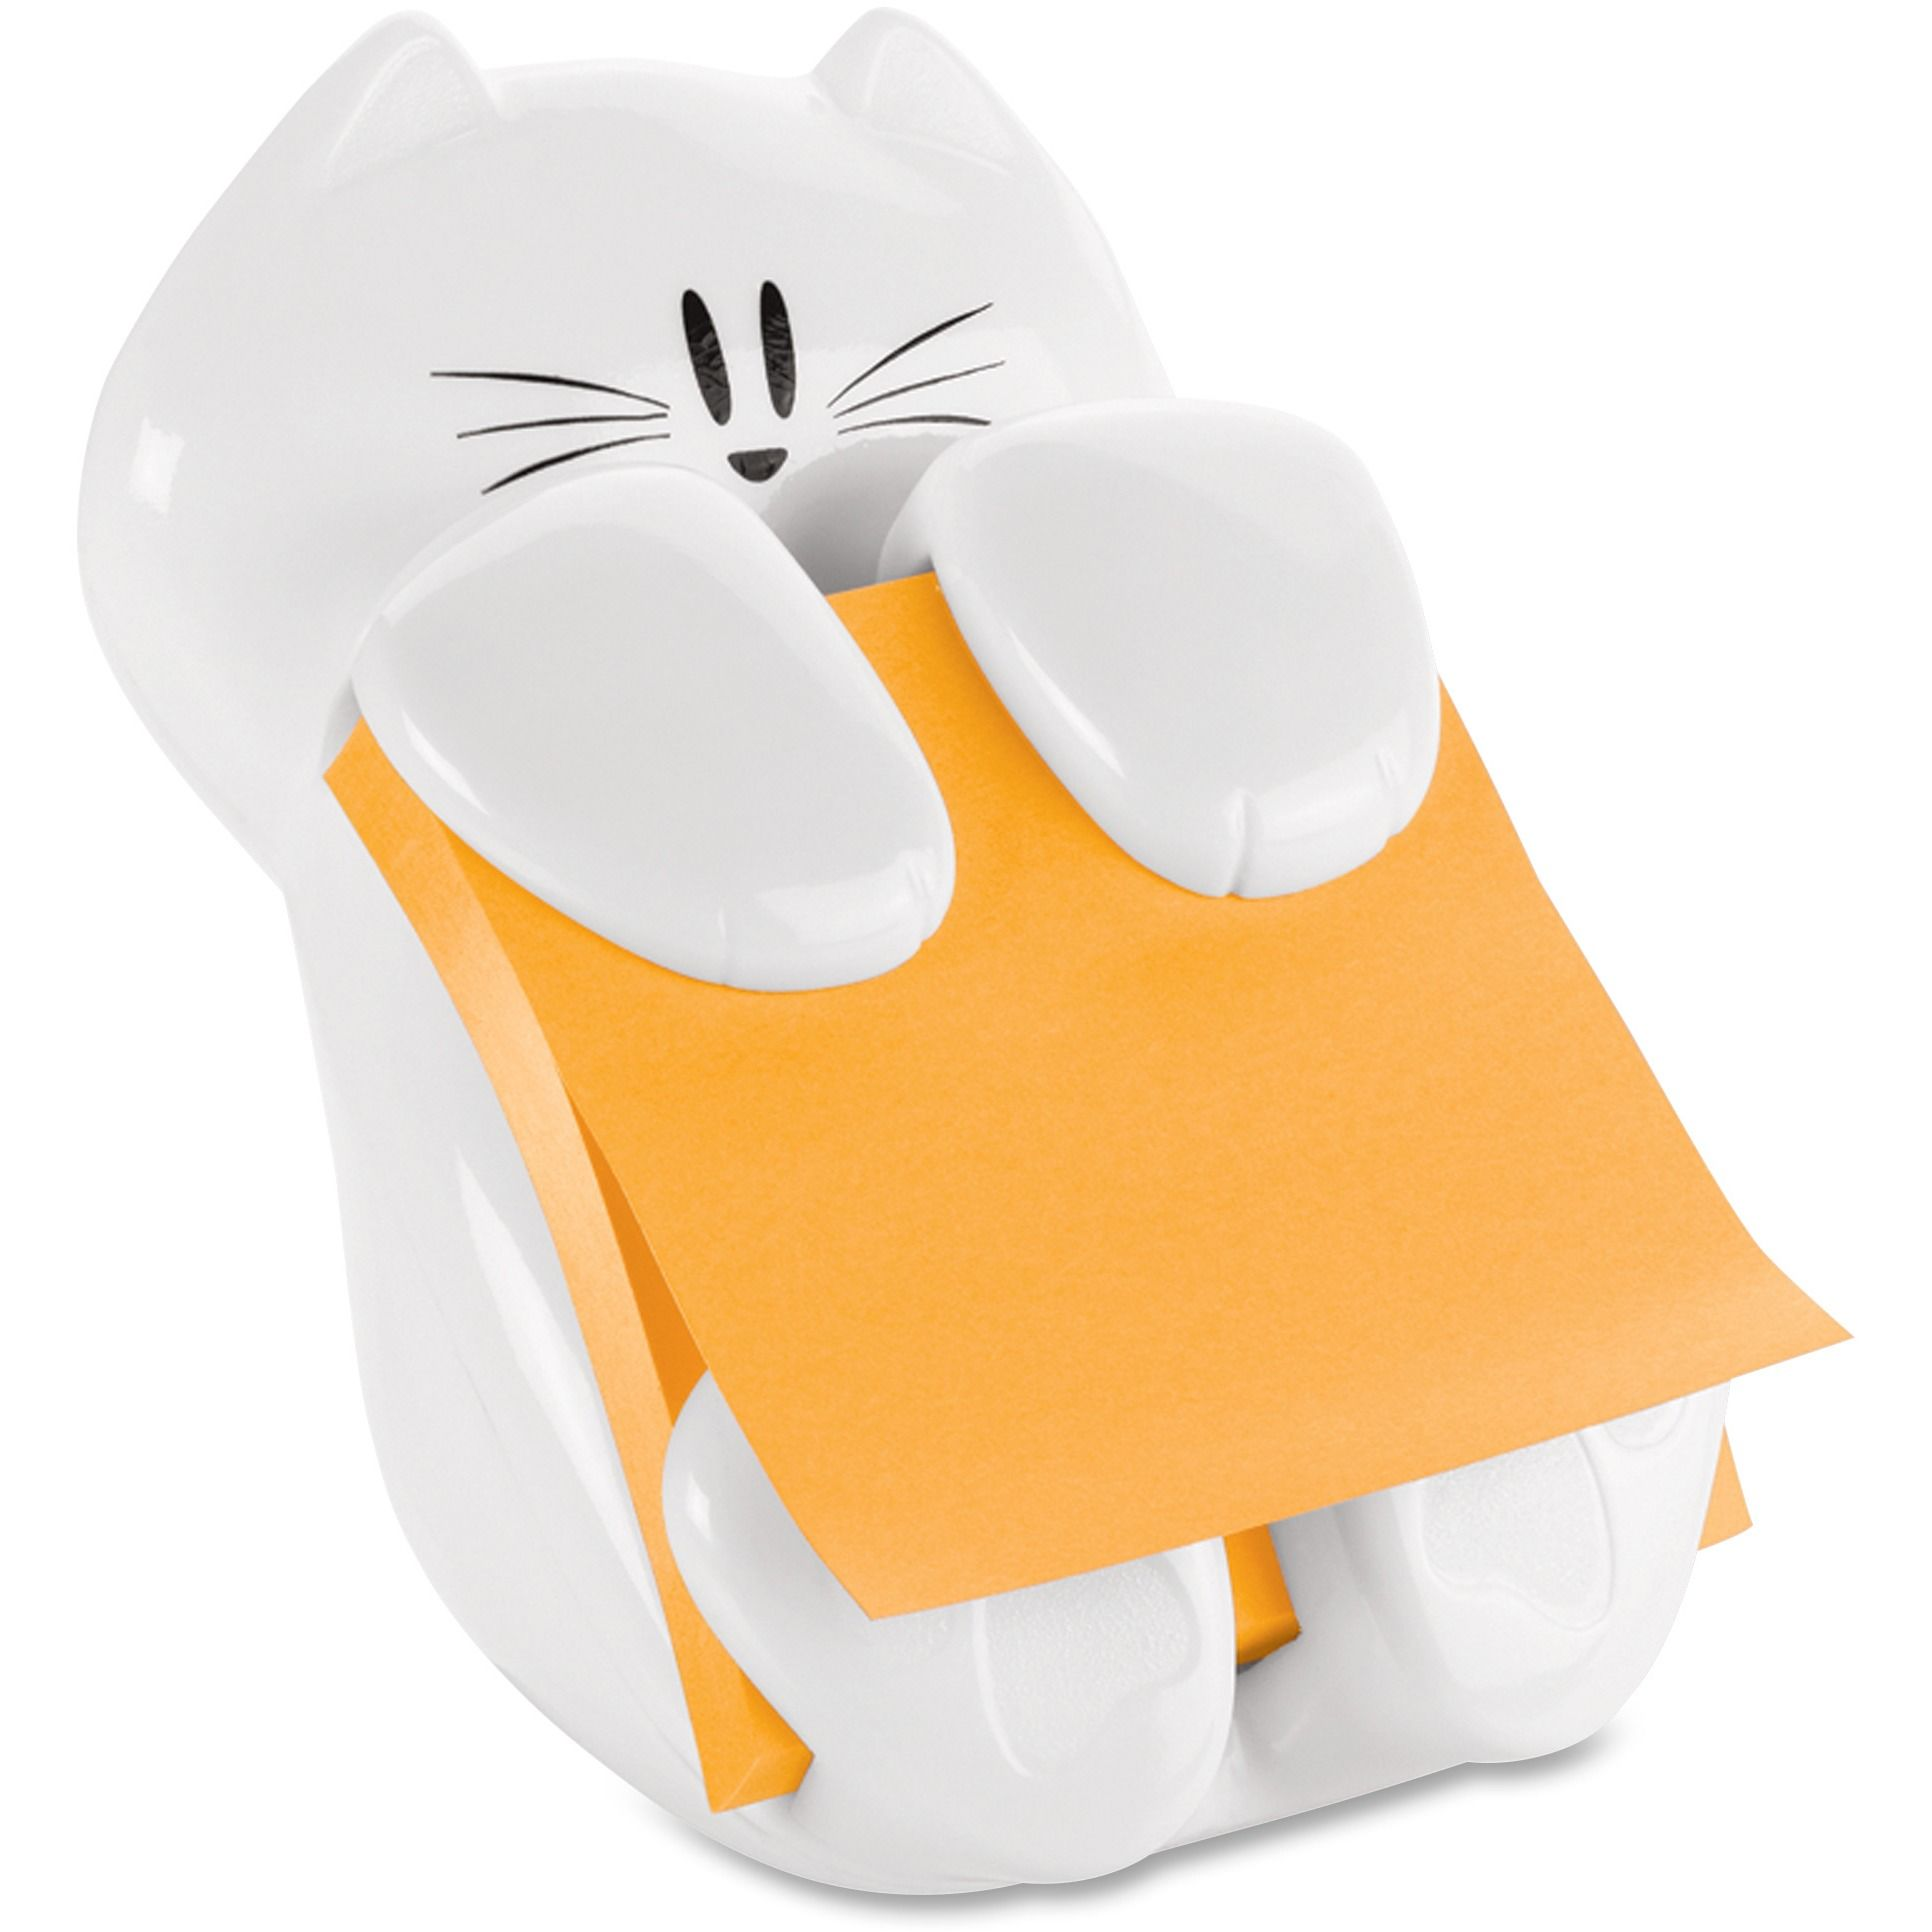 Office Supplies Cat lover gifts, Cat gifts, Cat lovers